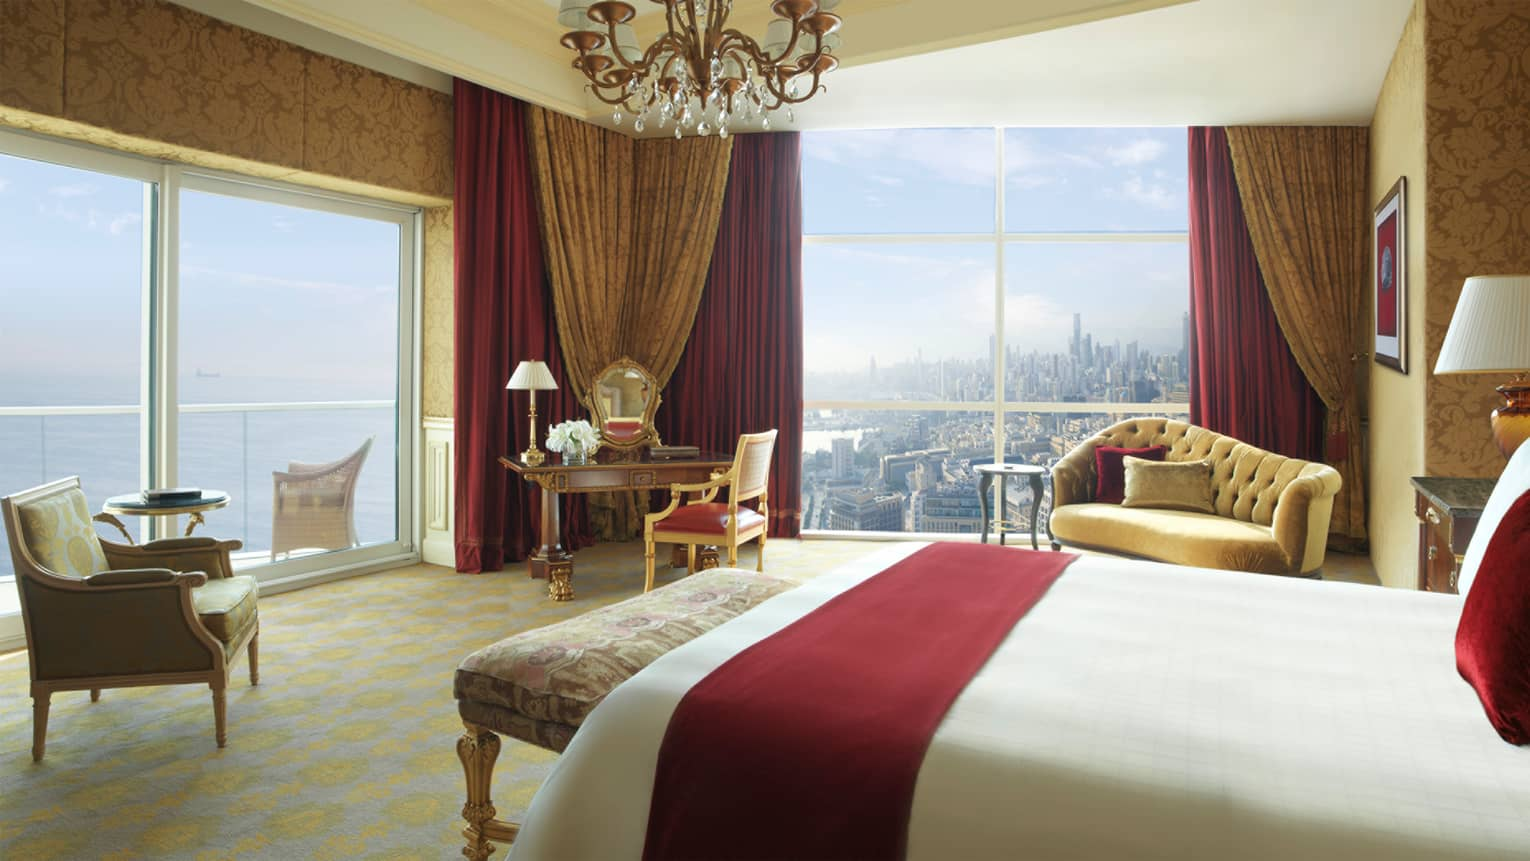 Beirut Hotel Suites Luxury Rooms Four Seasons Hotel Beirut